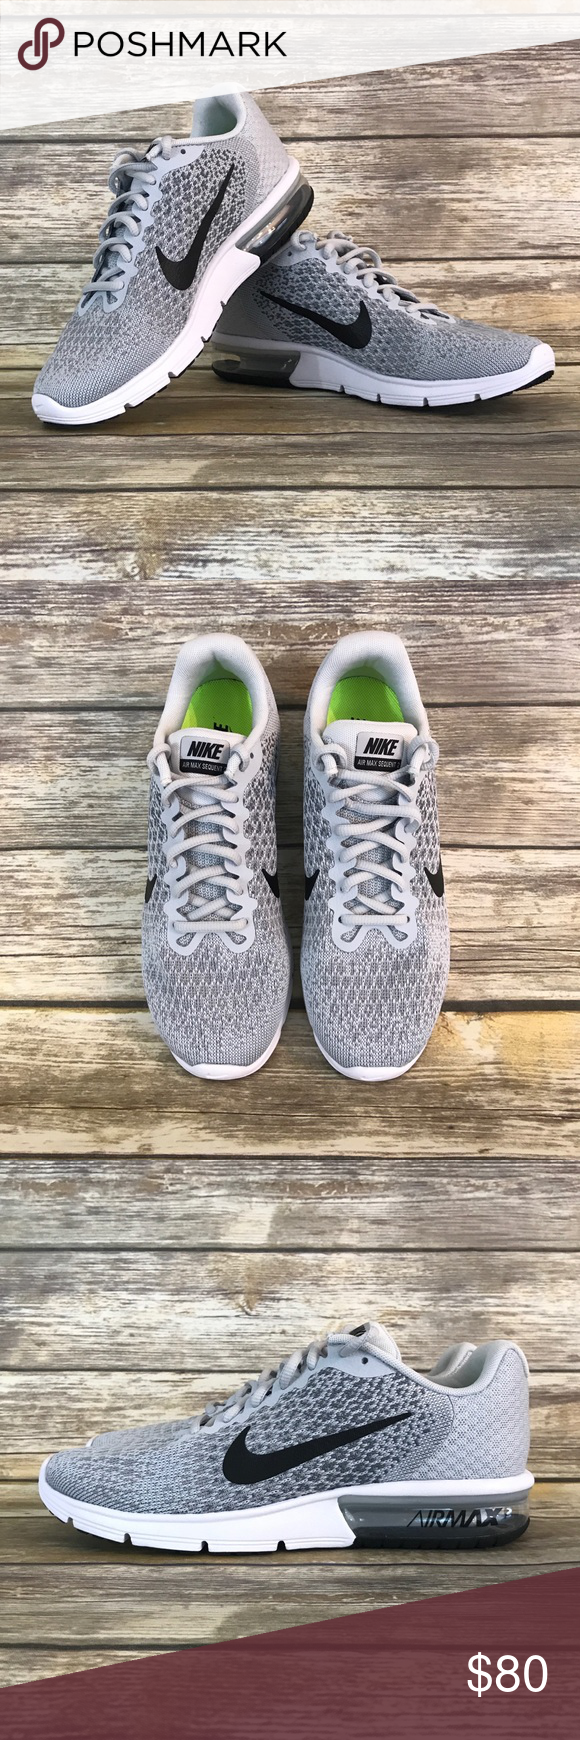 2fab5b6d692086 Nike Air Max Sequent 2 852461-002 ✨Brand New✨ Nike Shoes Sneakers